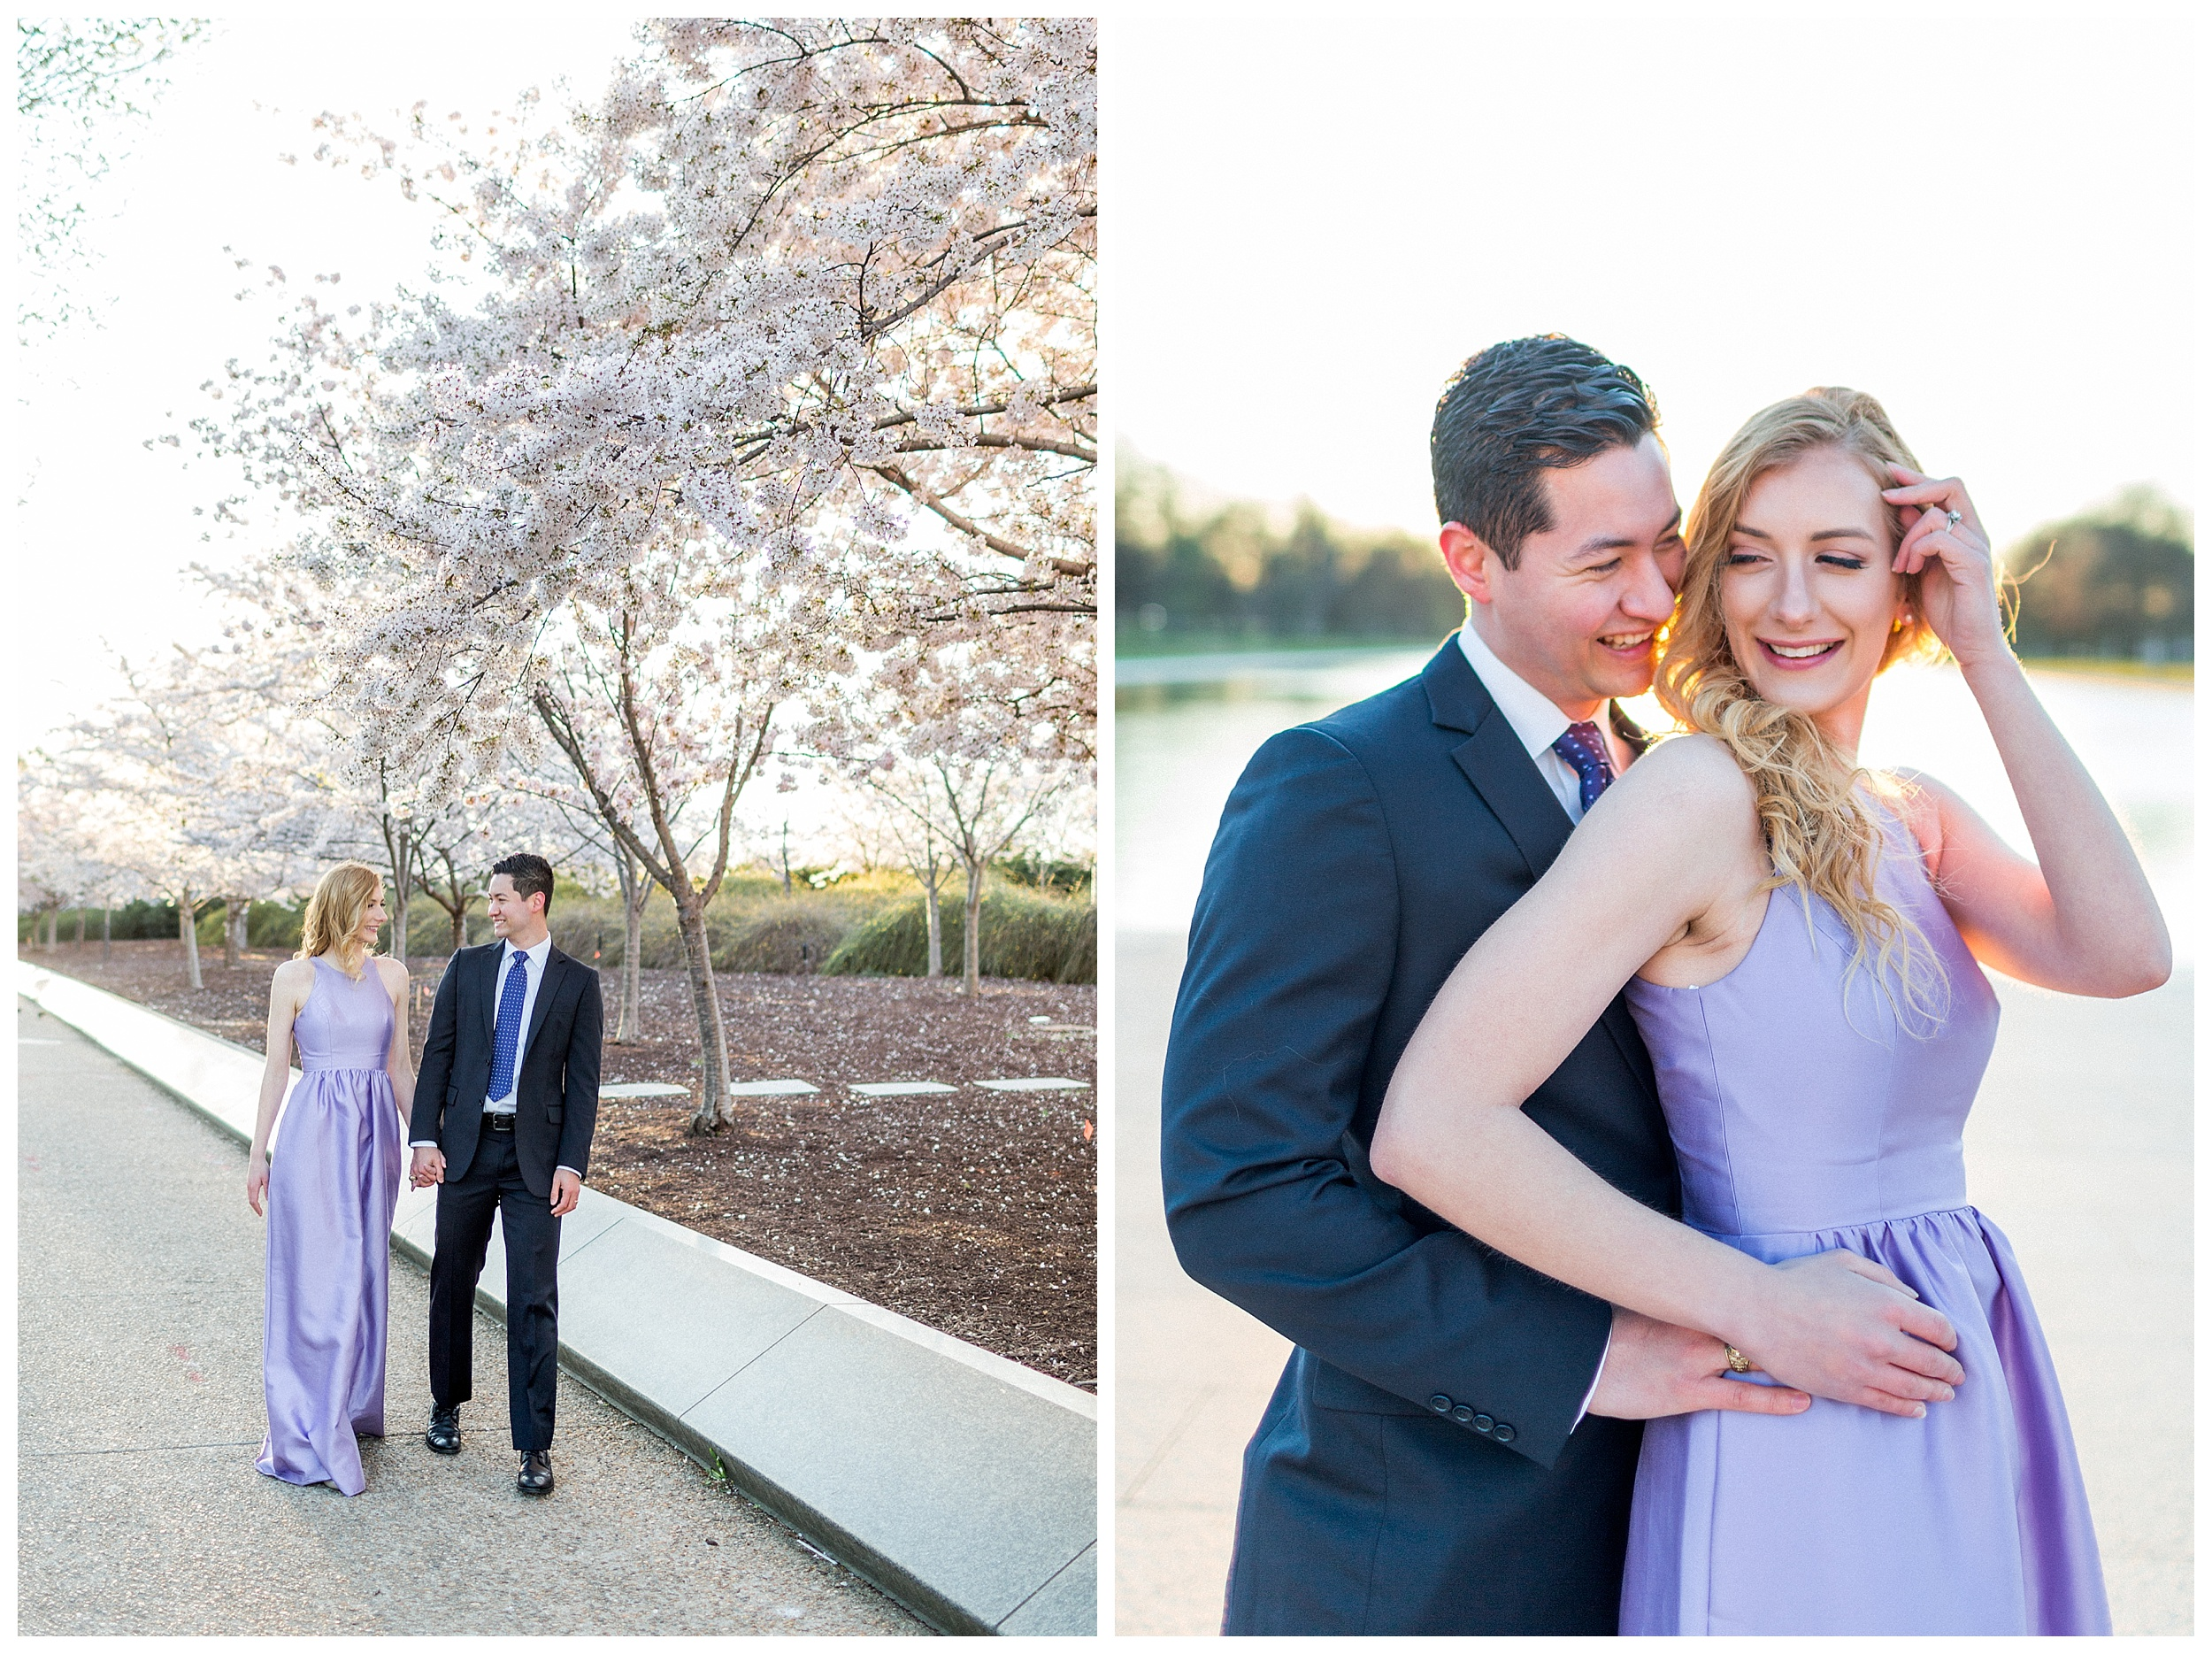 Washington DC Cherry Blossom Engagement Session_0008.jpg